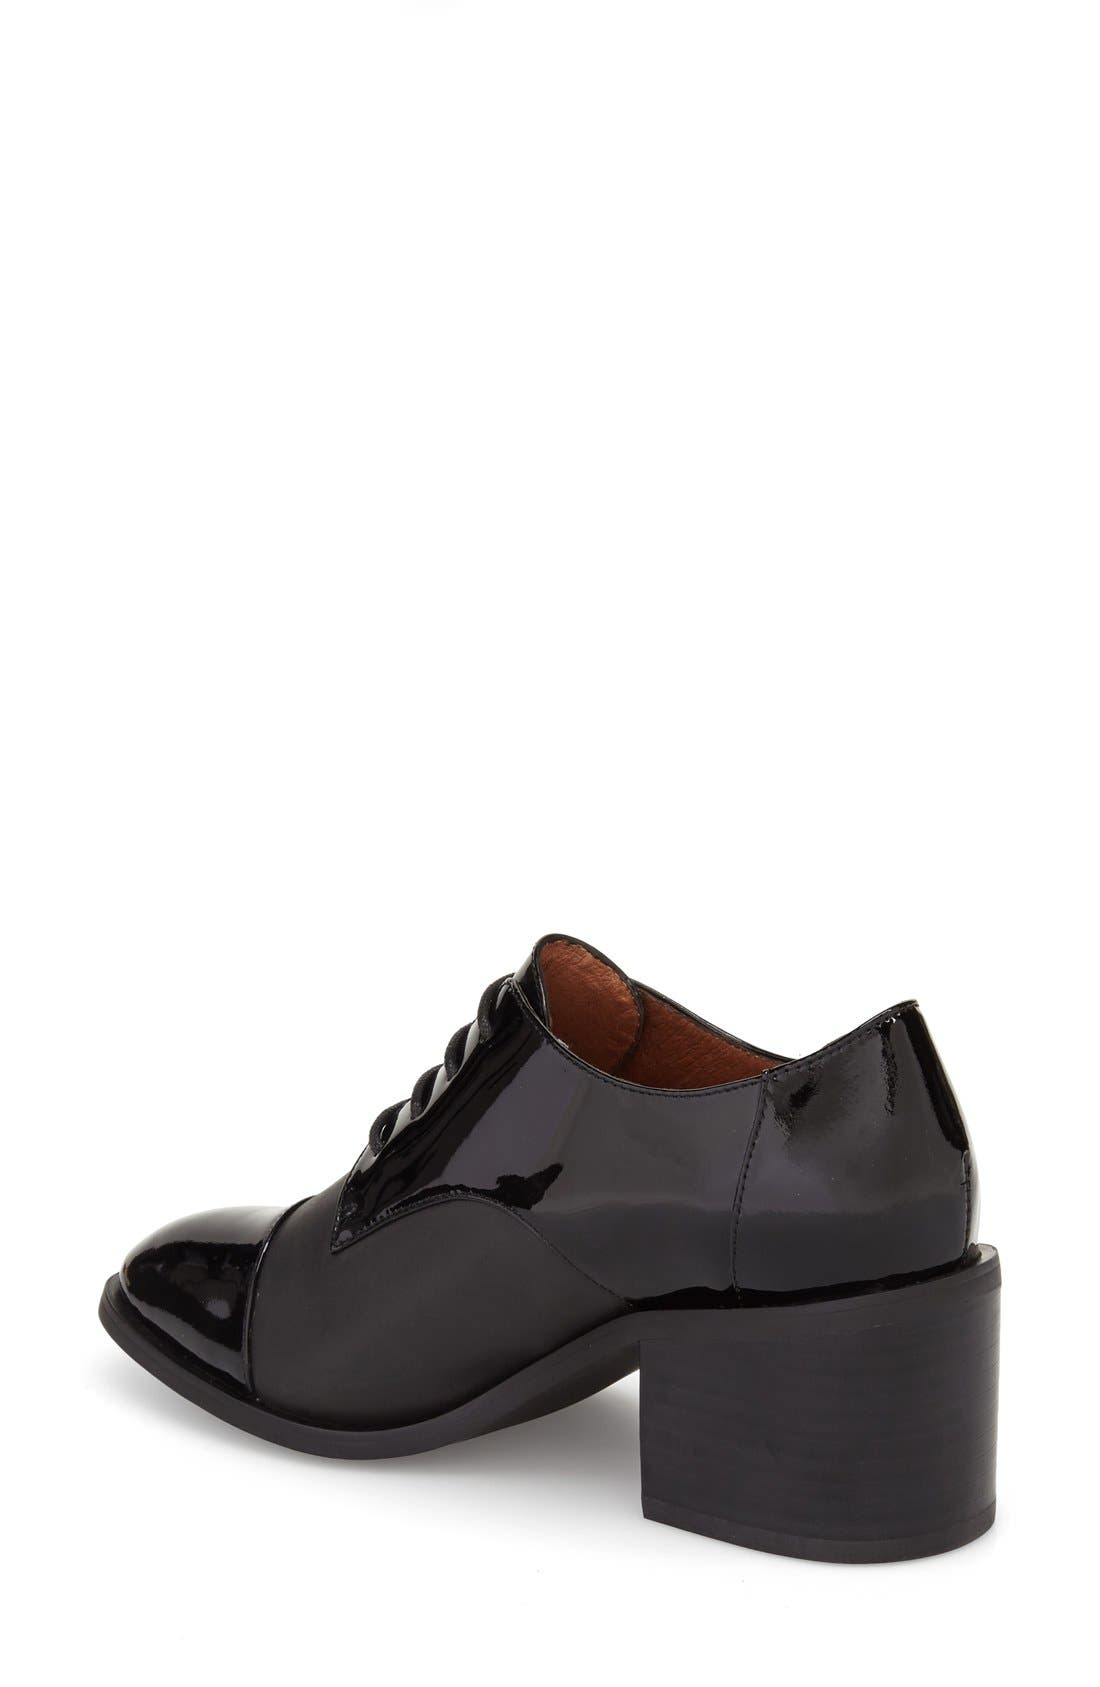 Alternate Image 2  - Jeffrey Campbell 'Egan' Cap Toe Oxford (Women)